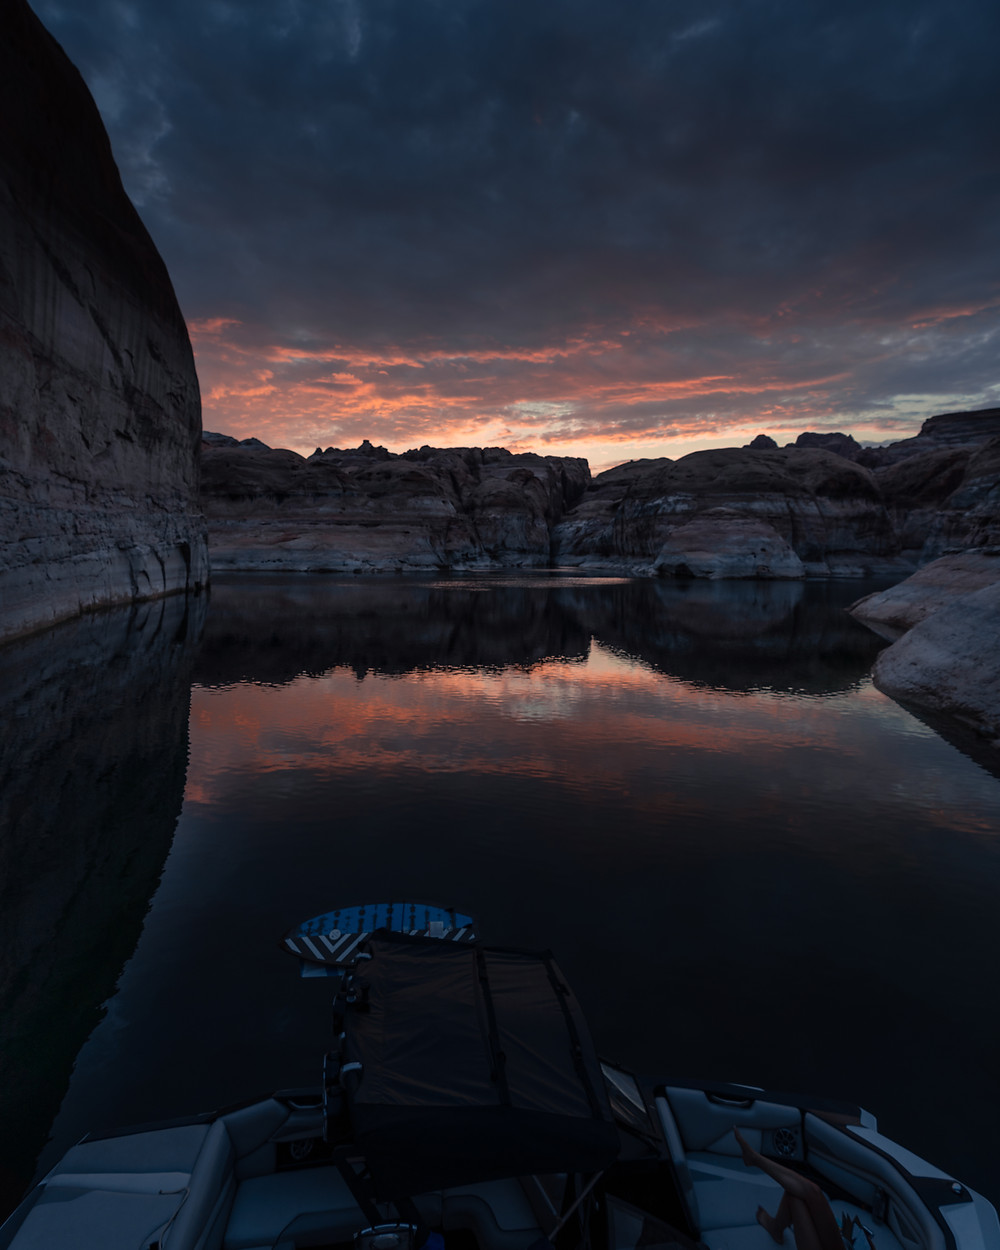 sunset reflections in rock canyons